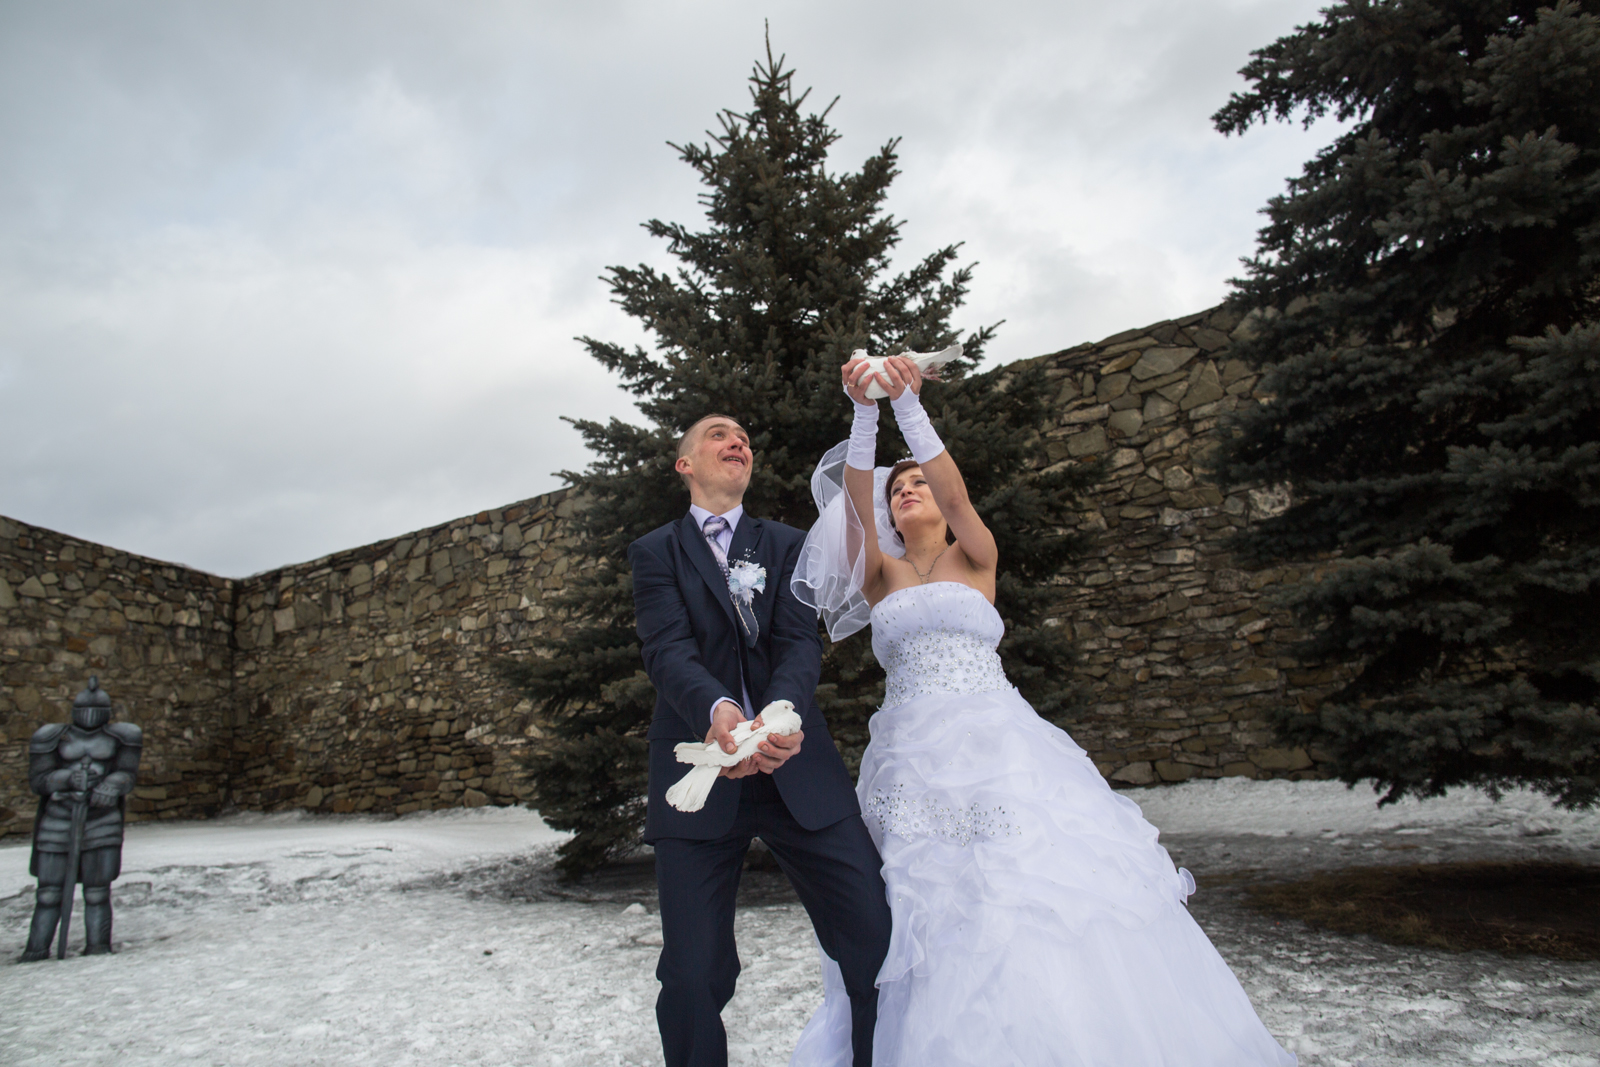 Ethnic Russians celebrate their wedding by realeasing doves at the fortress in Novokuznetsk.